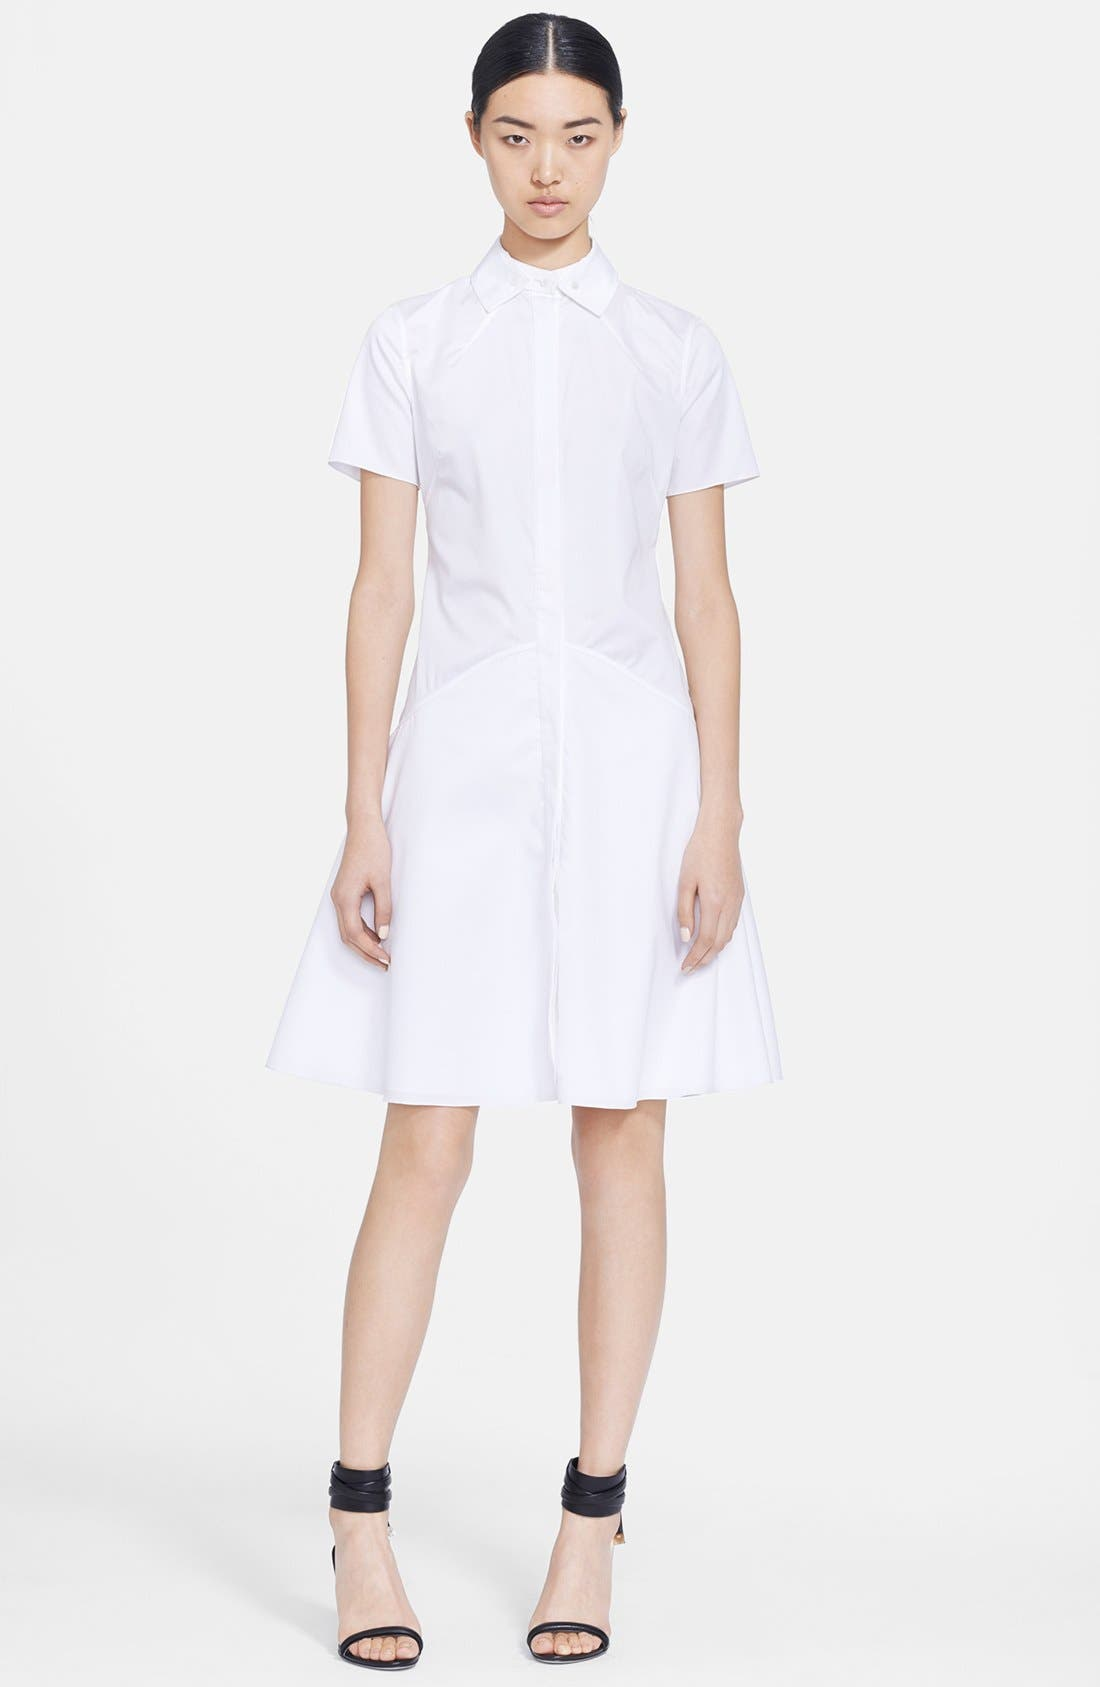 Main Image - Jason Wu Poplin Fit & Flare Shirtdress